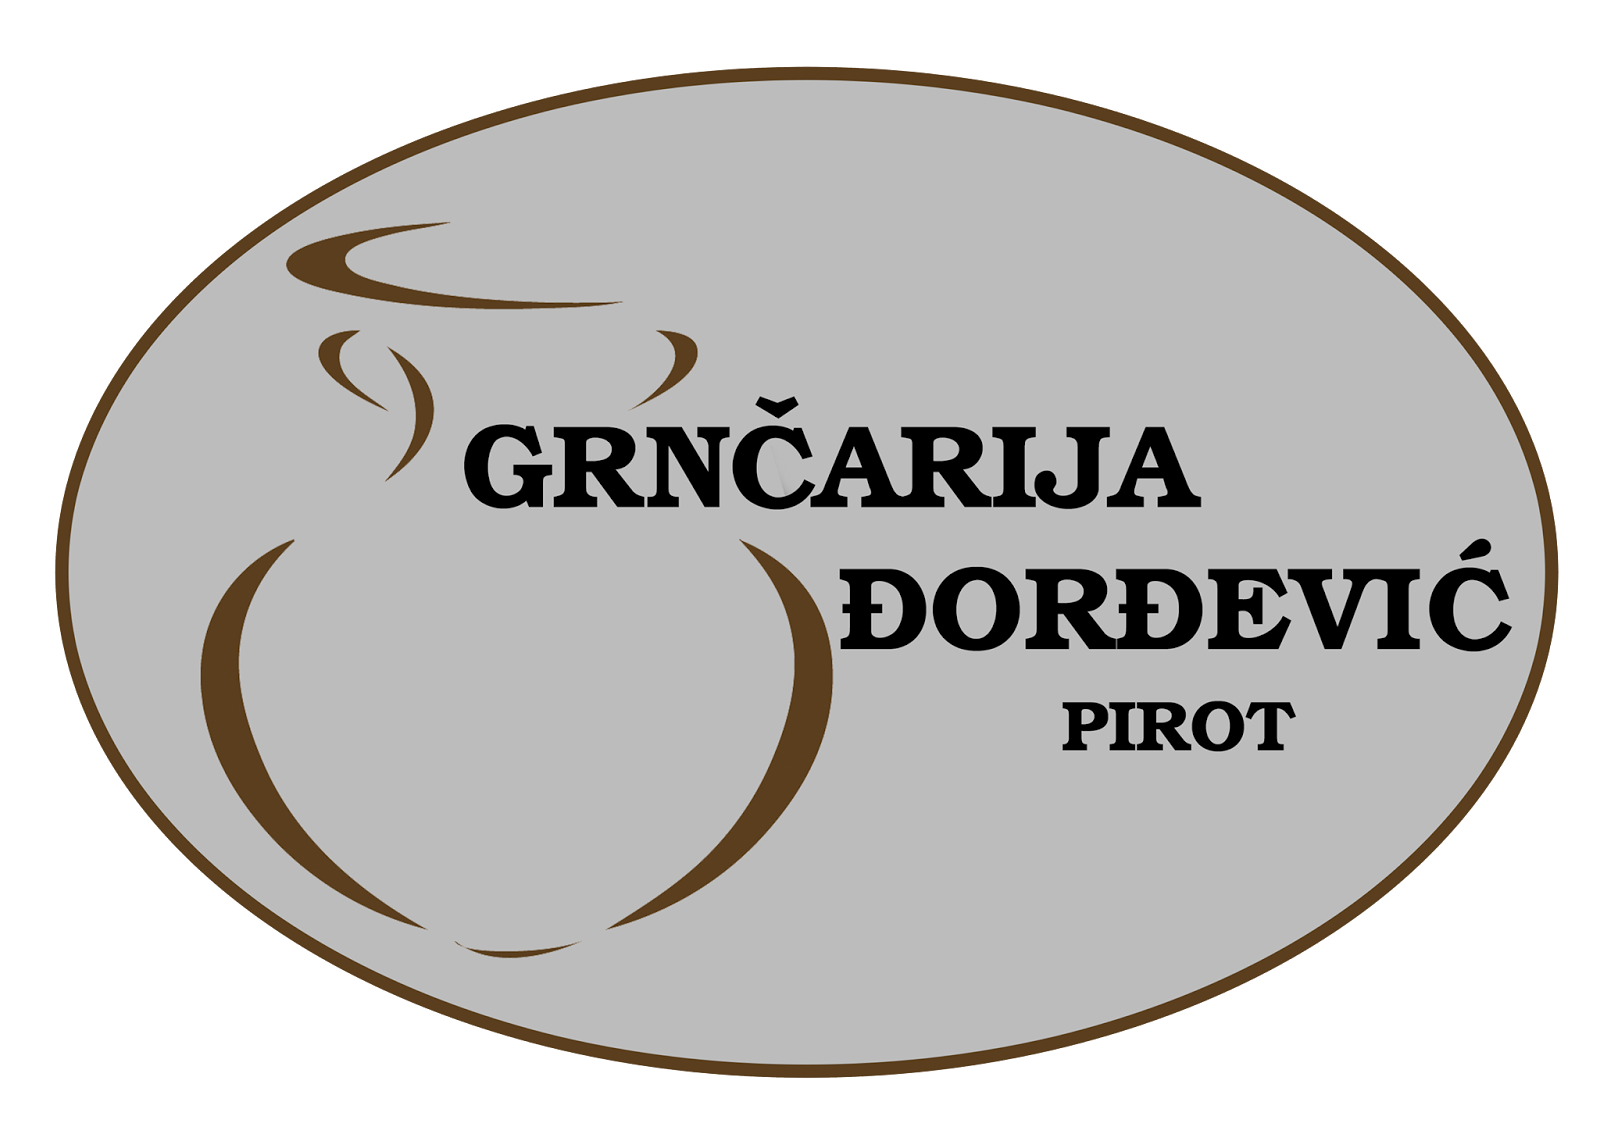 Grncarija Djordjevic